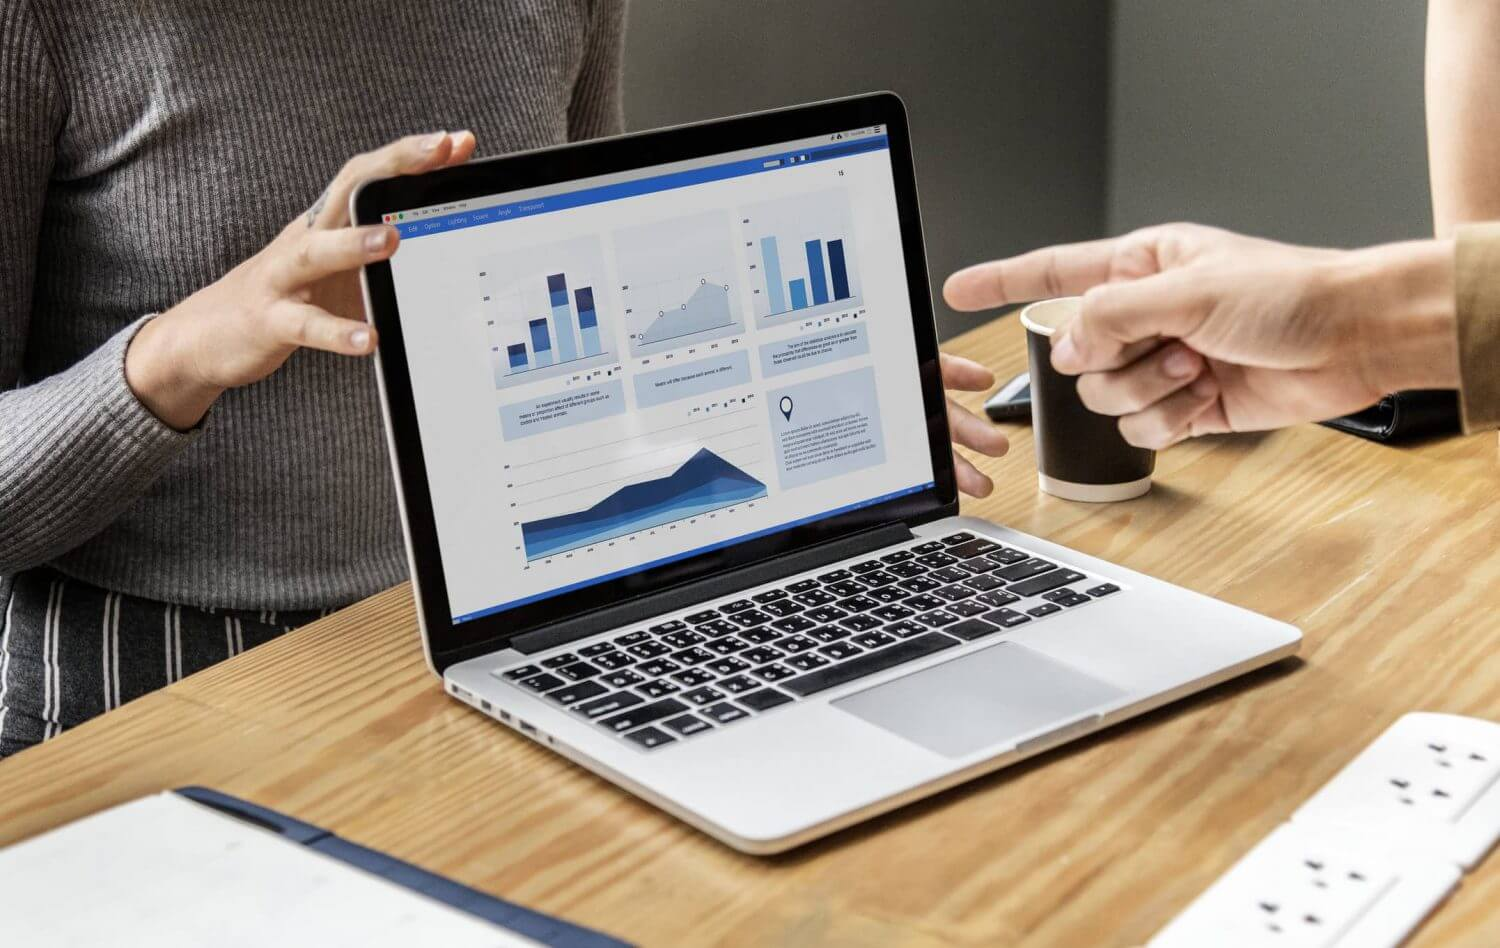 data is very important for running successful business